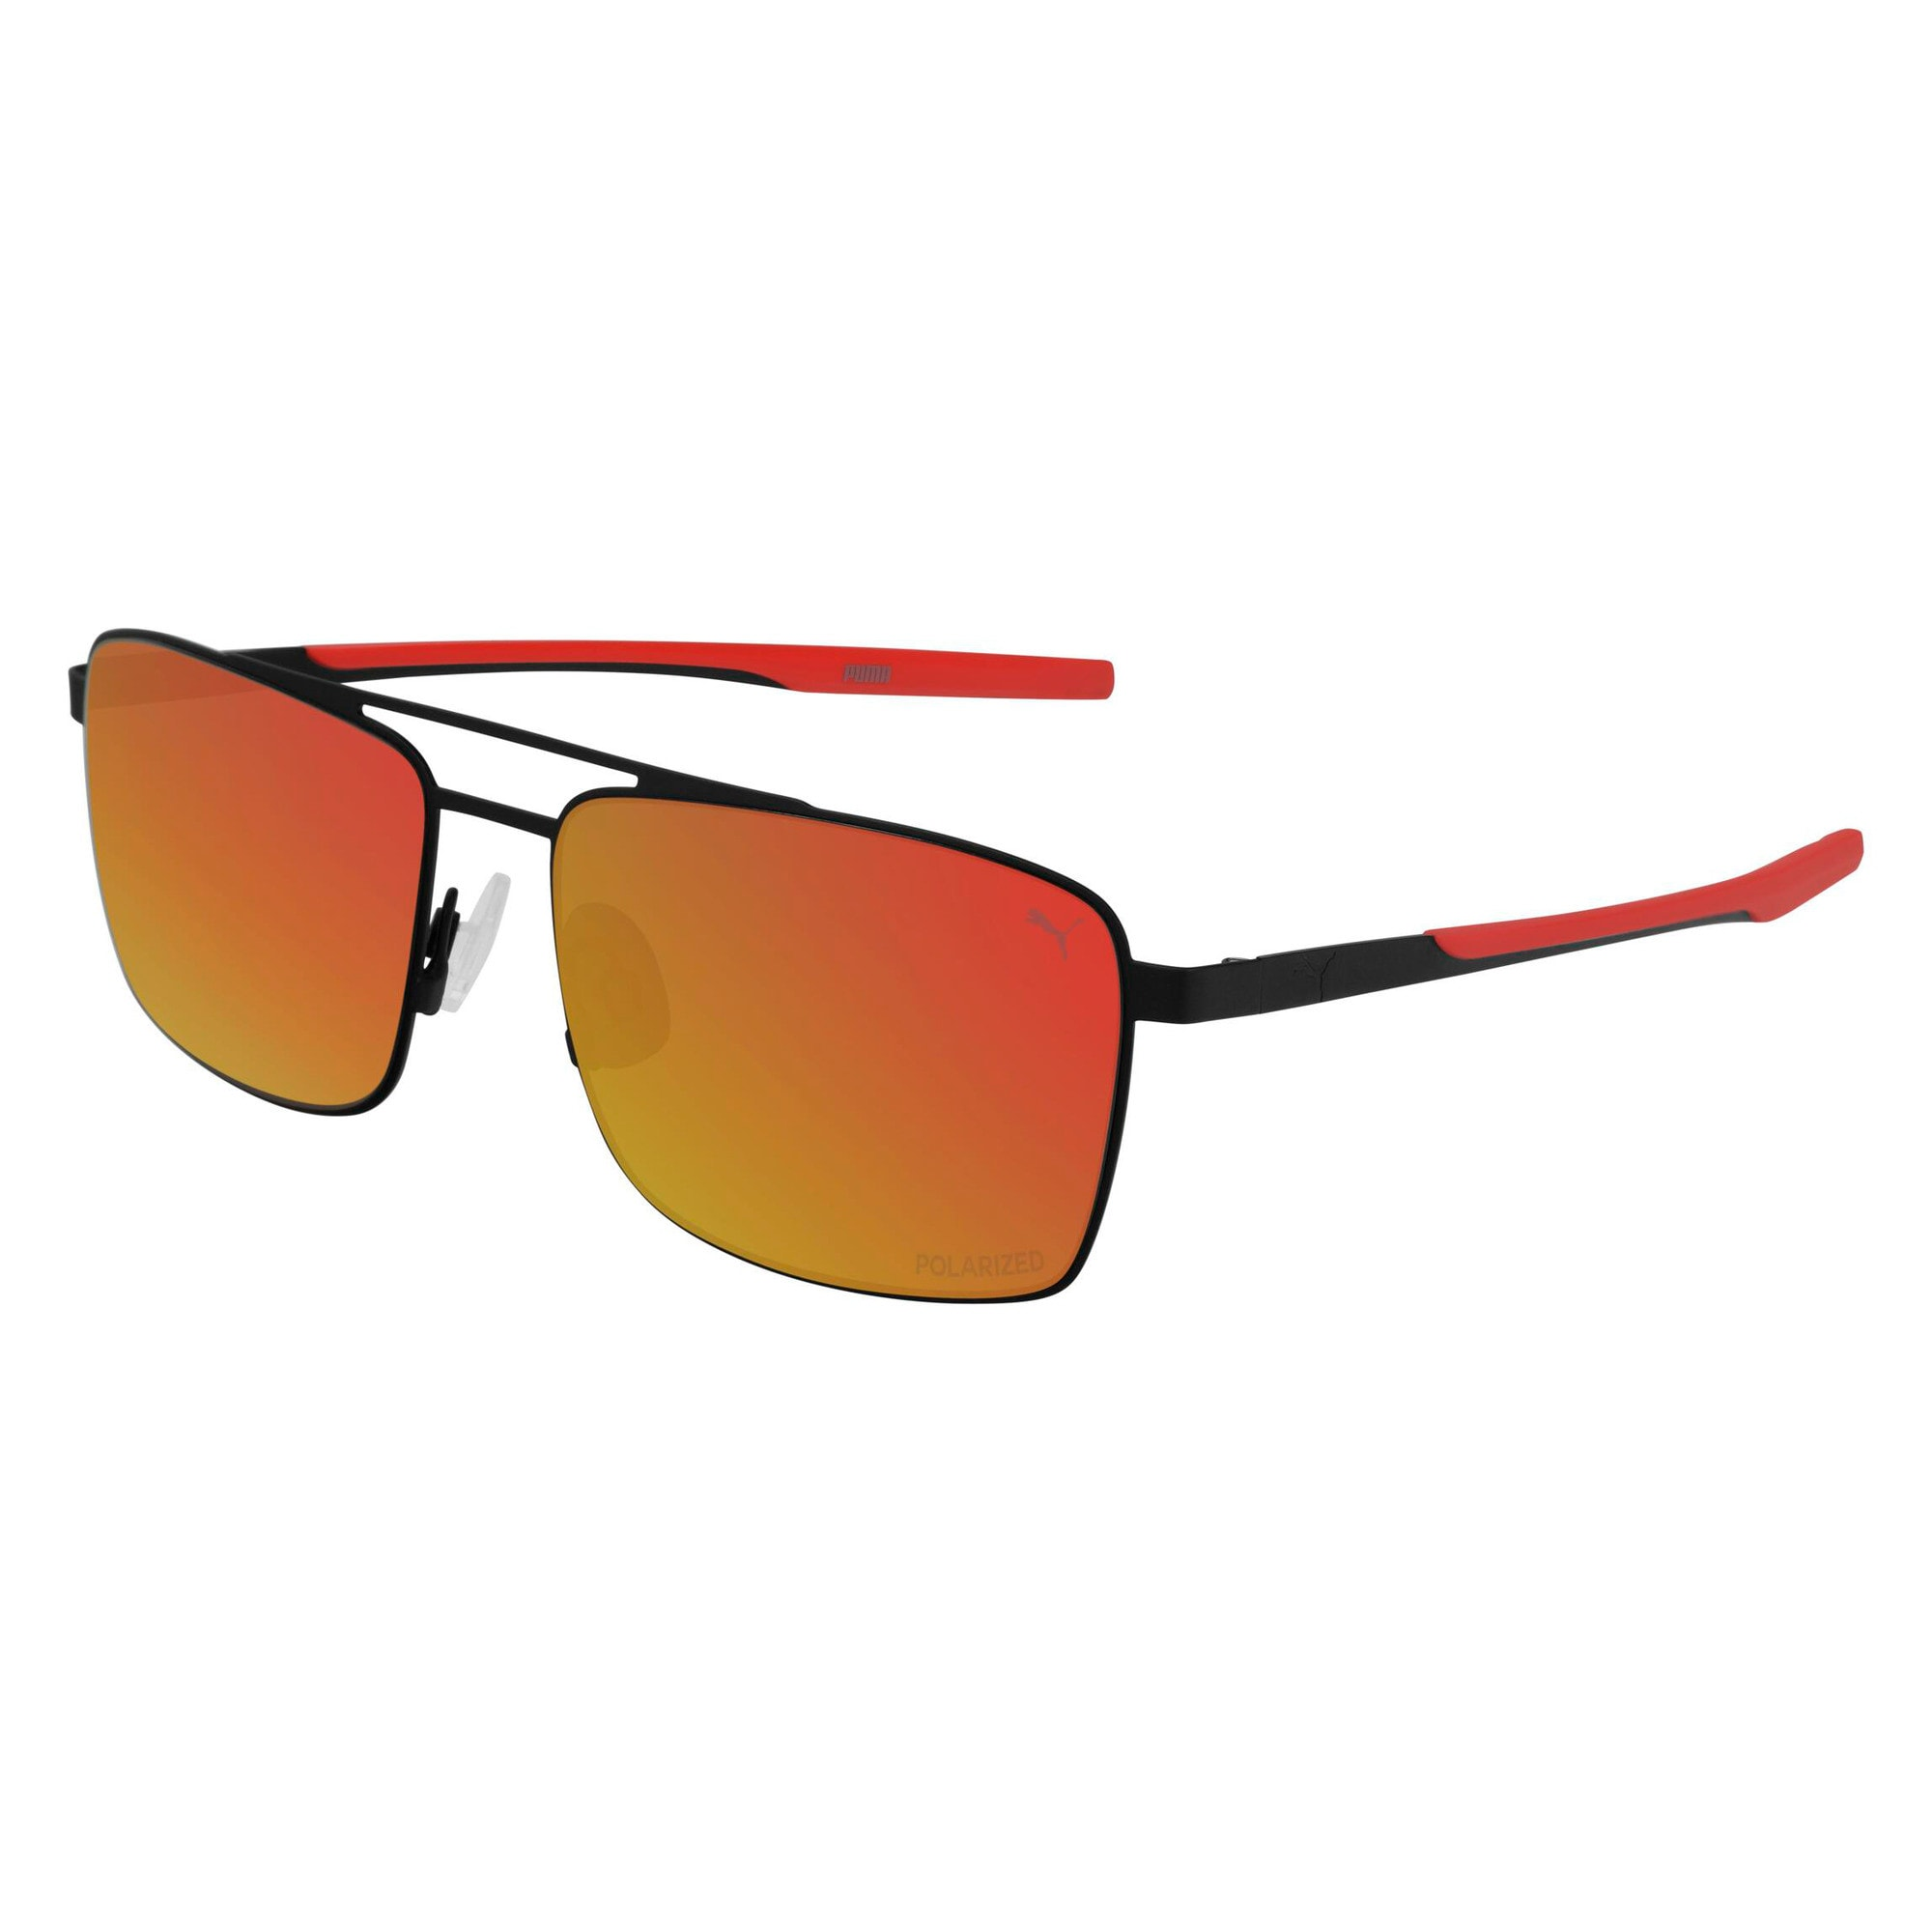 Thumbnail 1 of Newport Aviators, NEGRO, mediano